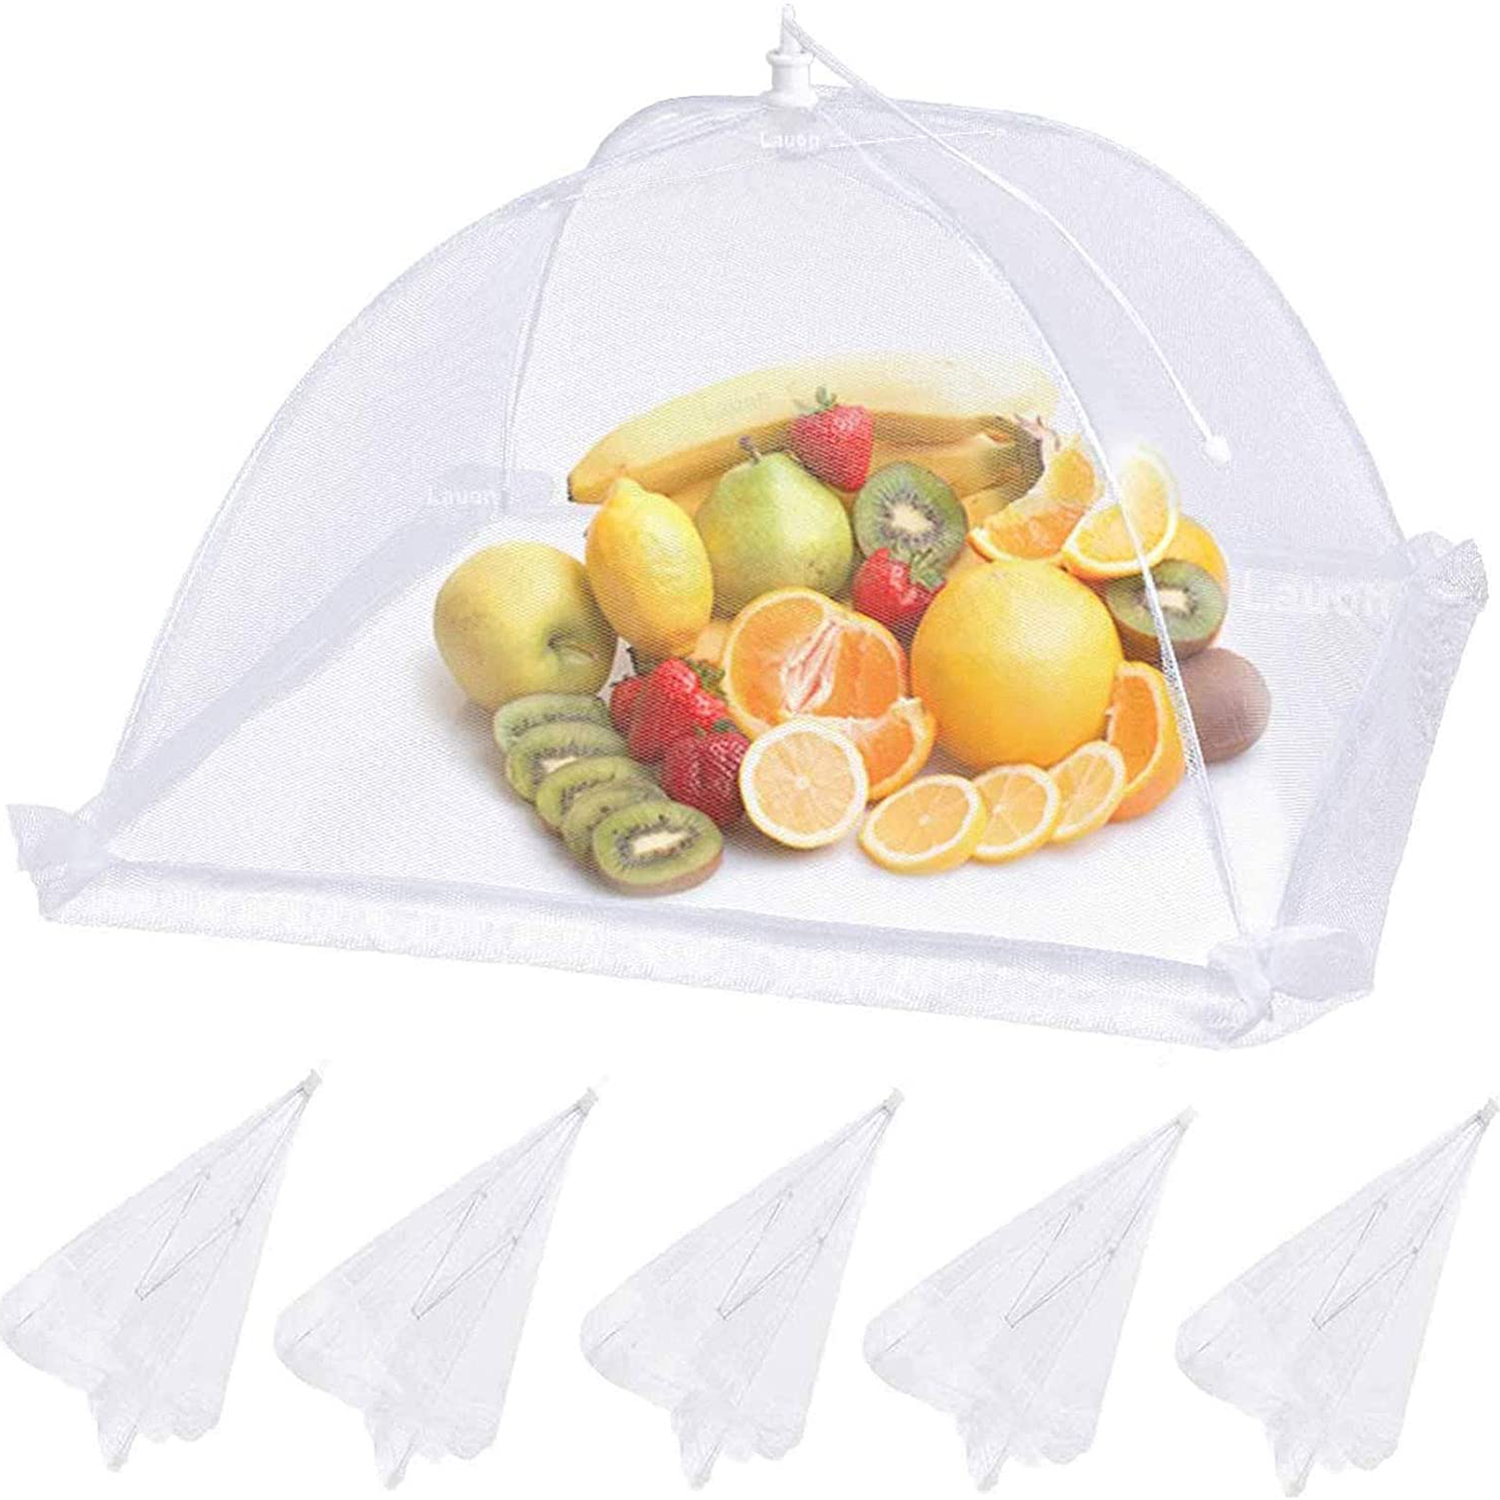 Lauon Food Cover Mesh Food Tent,